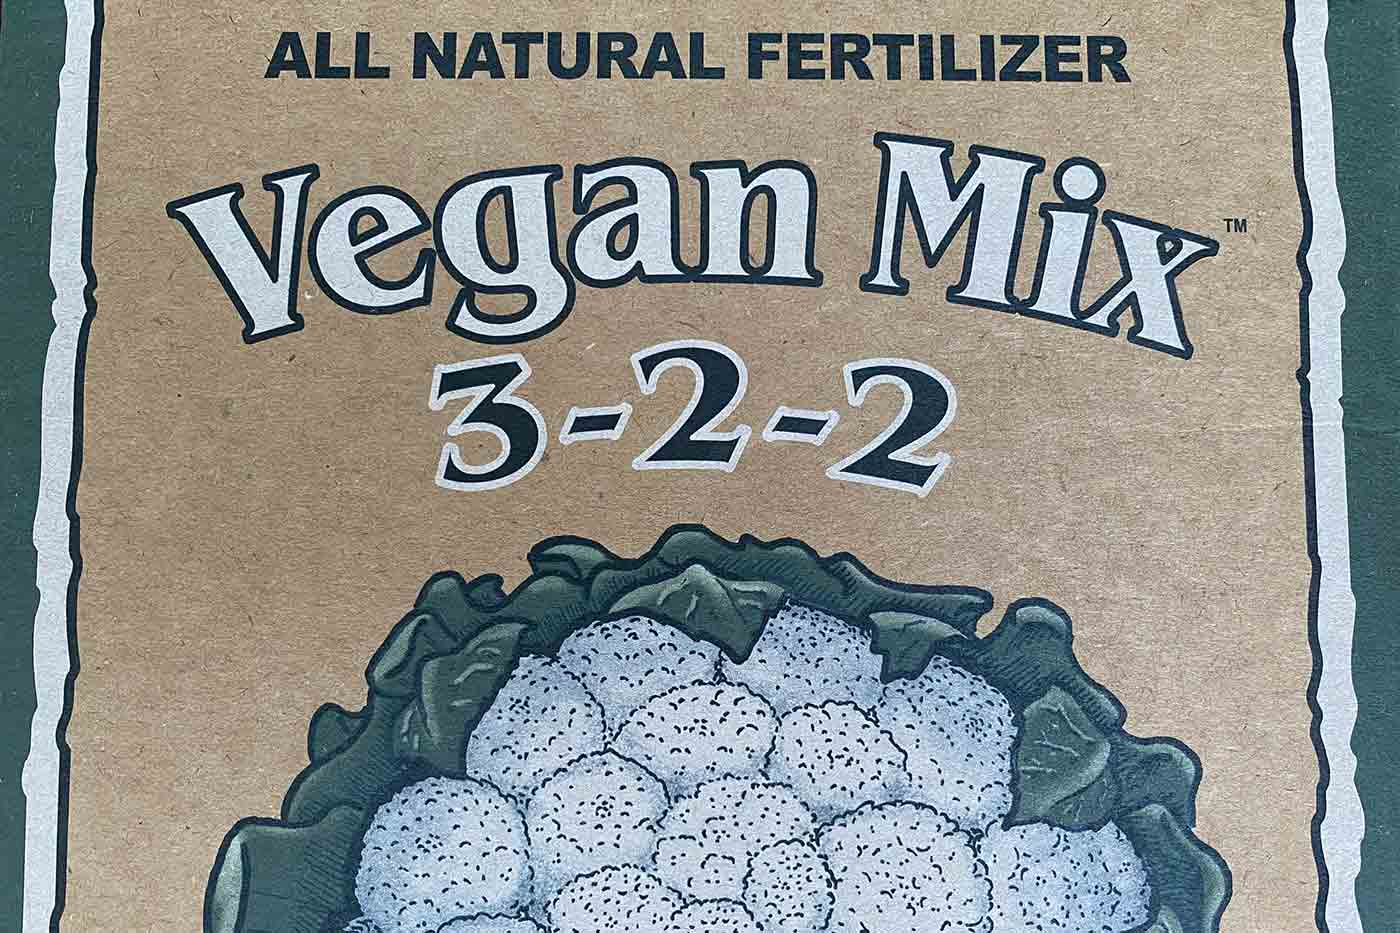 vegan fertilizer label Down to Earth